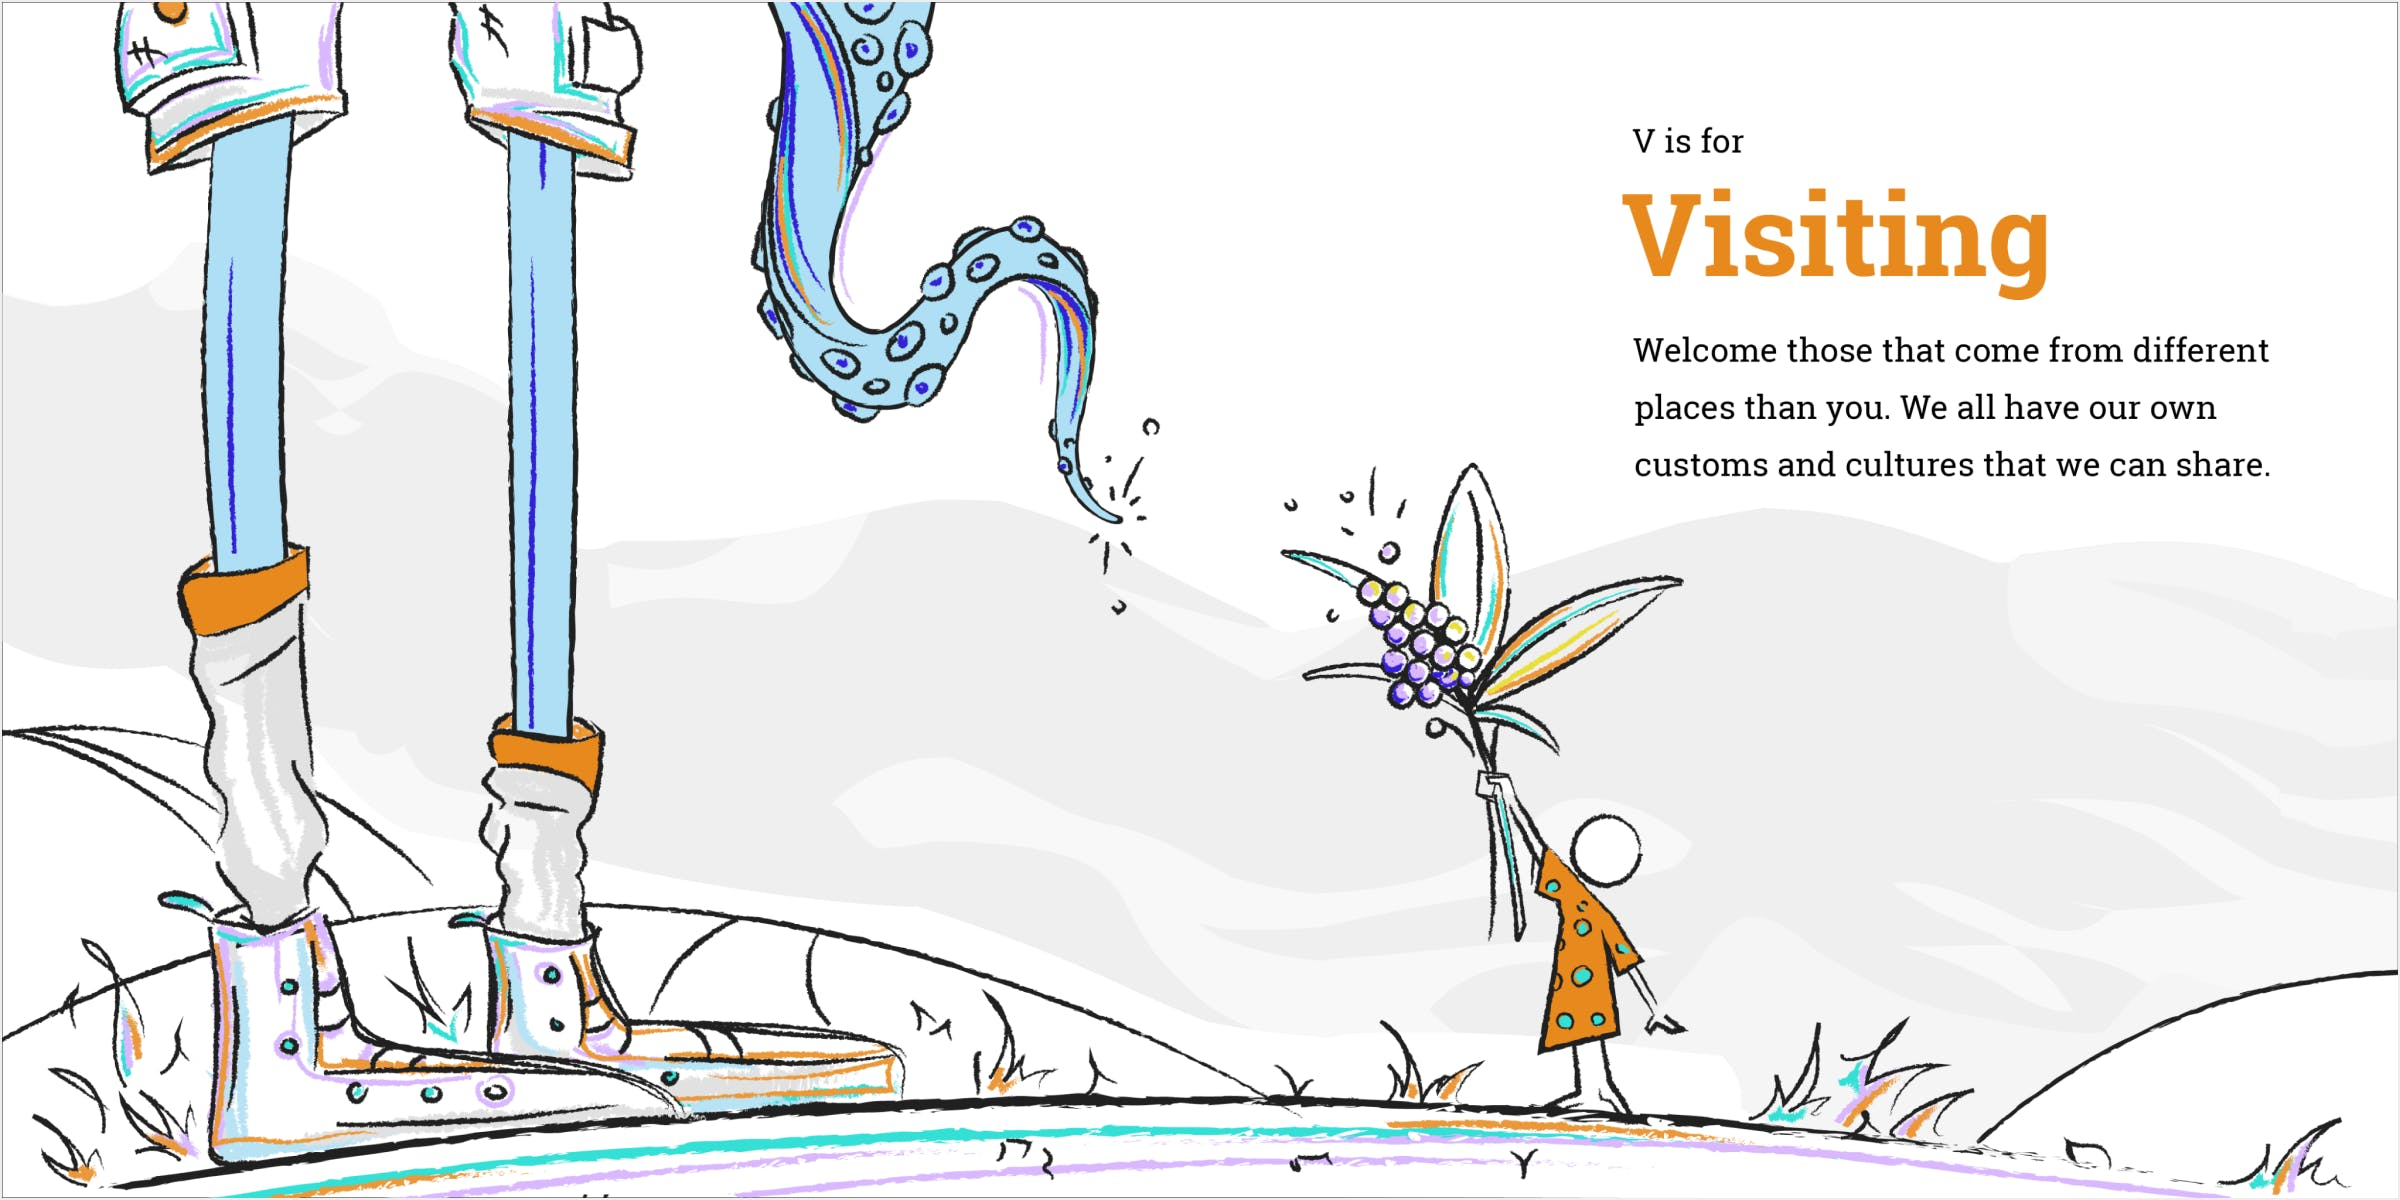 Mockup of visiting spread. A child reaches to offer a gift to the tentacle creature.